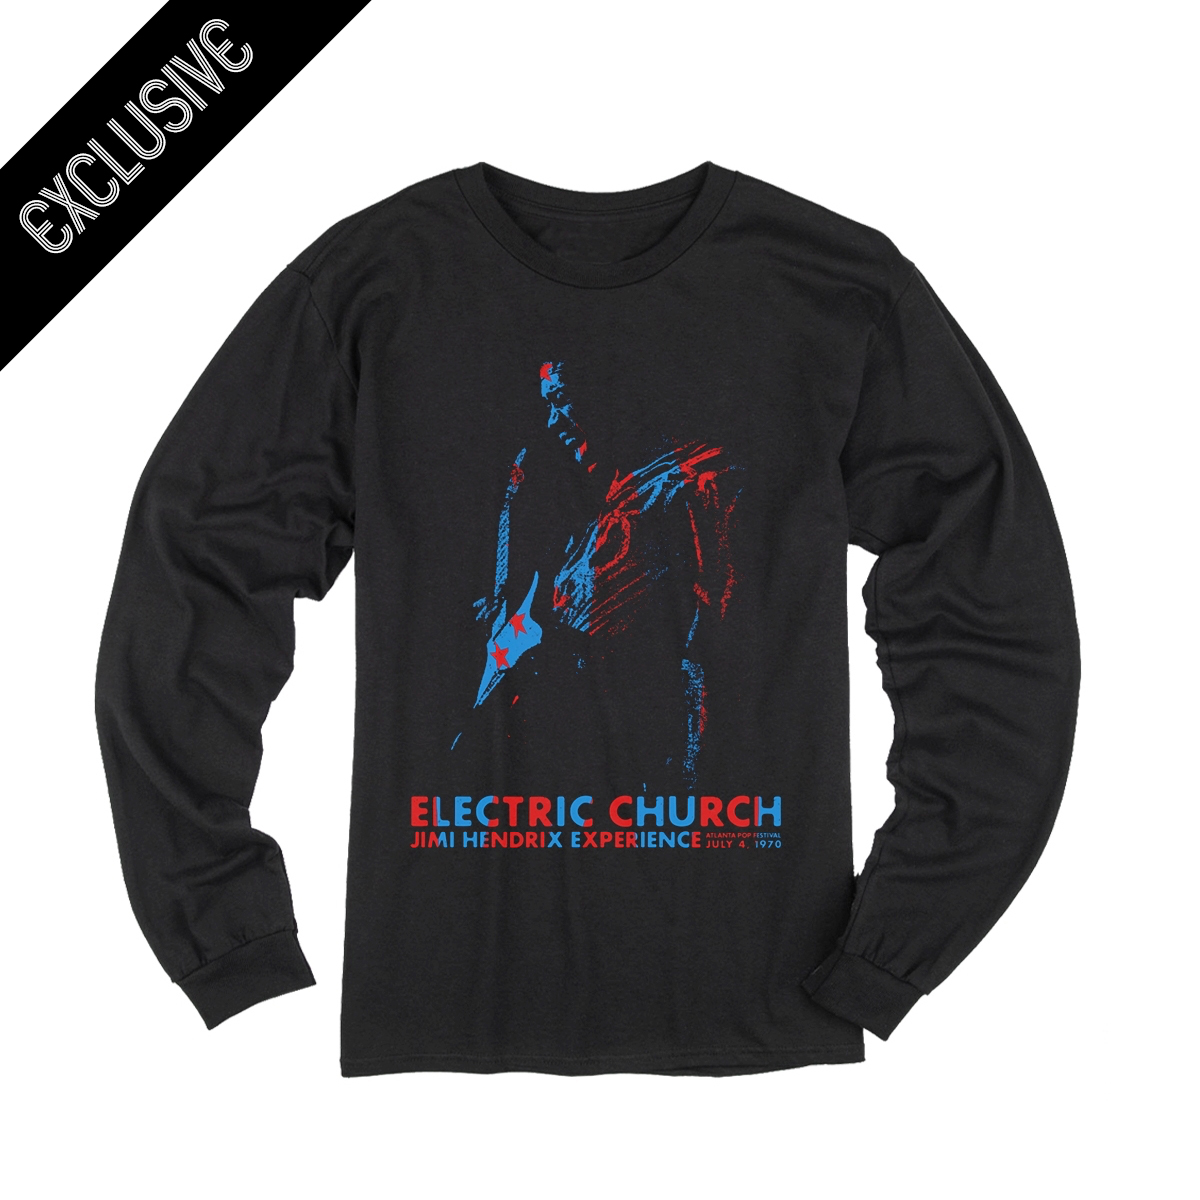 Electric Church Limited Edition Longsleeve T-shirt